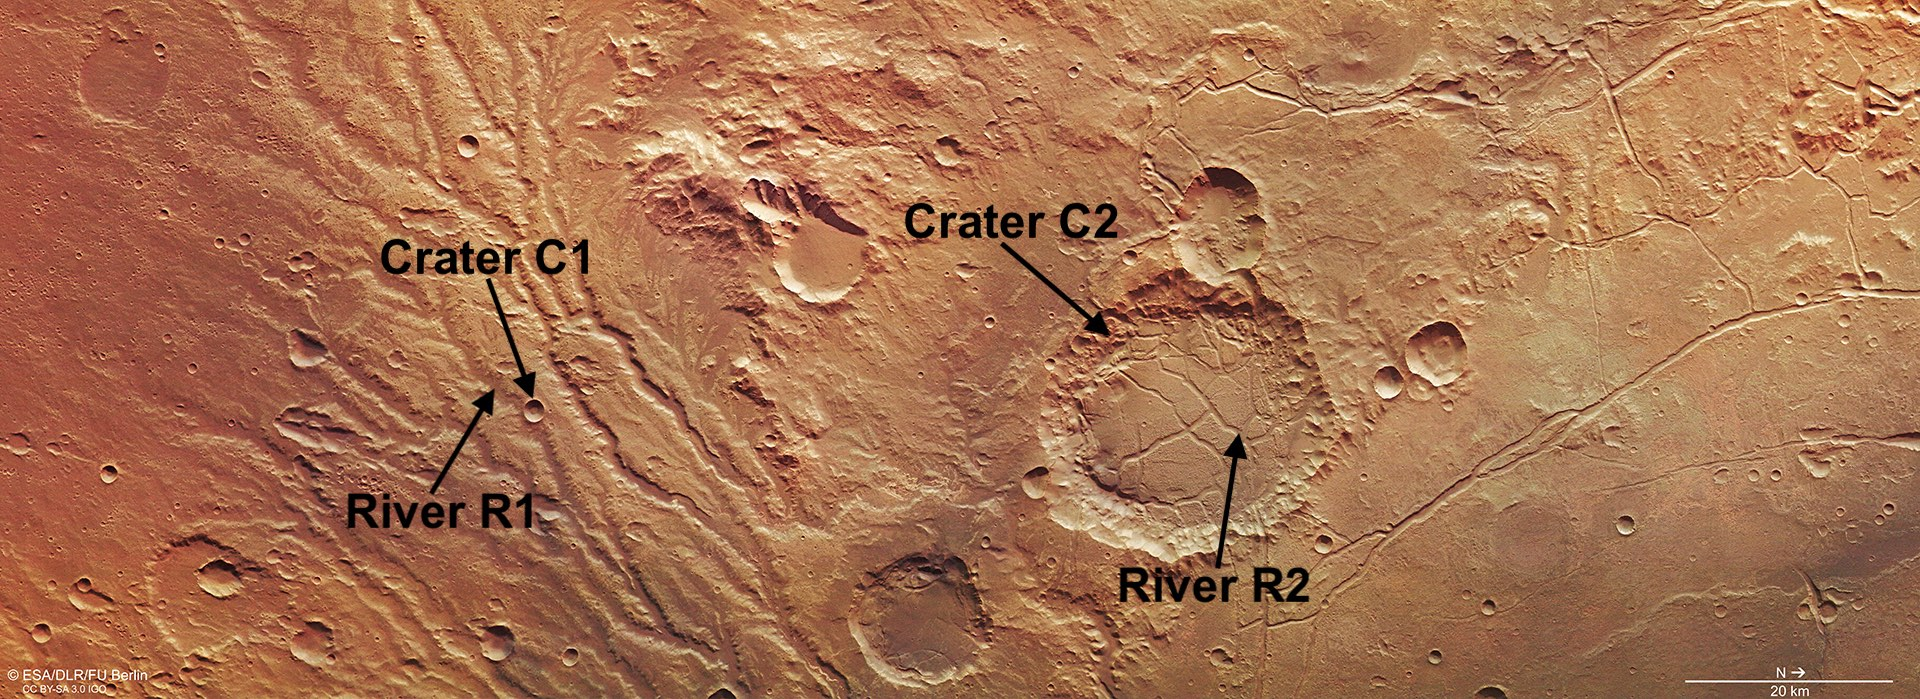 Martian imagery for craters and rivers for Exercise 3.8